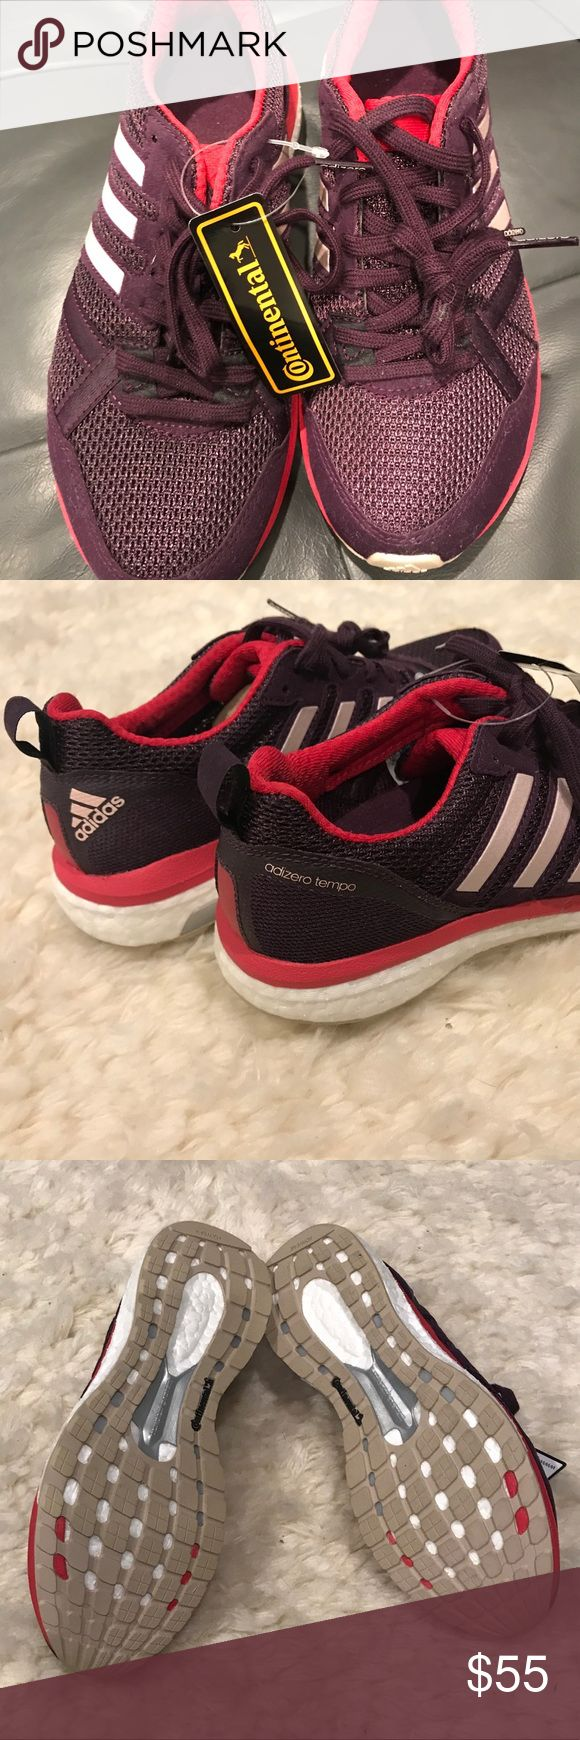 Adidas Boost Endless Energy Sneakers Brand new with tag, never worn plum & fuschia sneakers. Size 6 adidas Shoes Athletic Shoes